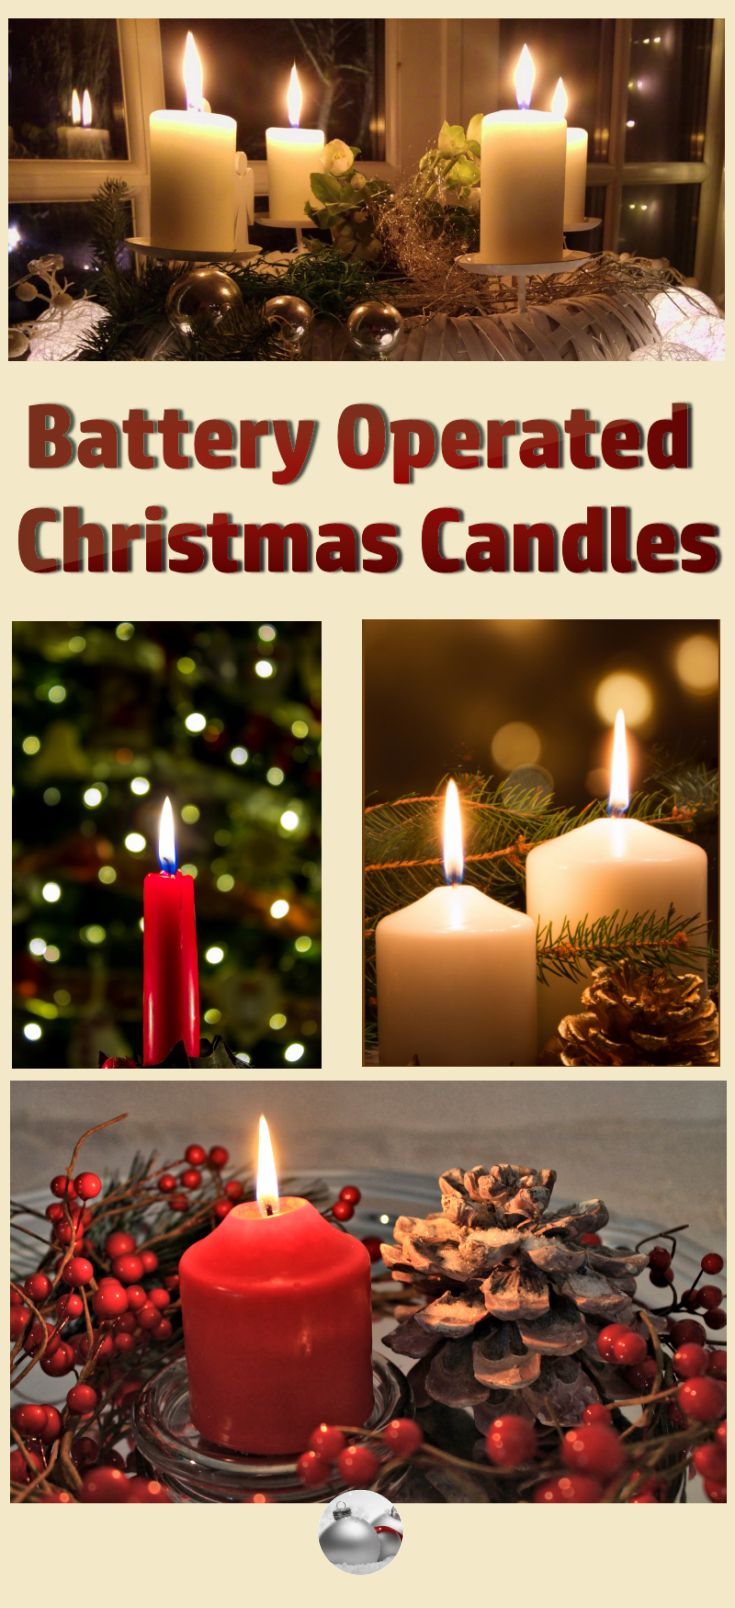 get the best battery operated christmas candles and you dont have to worry about wax dripping everywhere or fires these are great to use in centerpieces